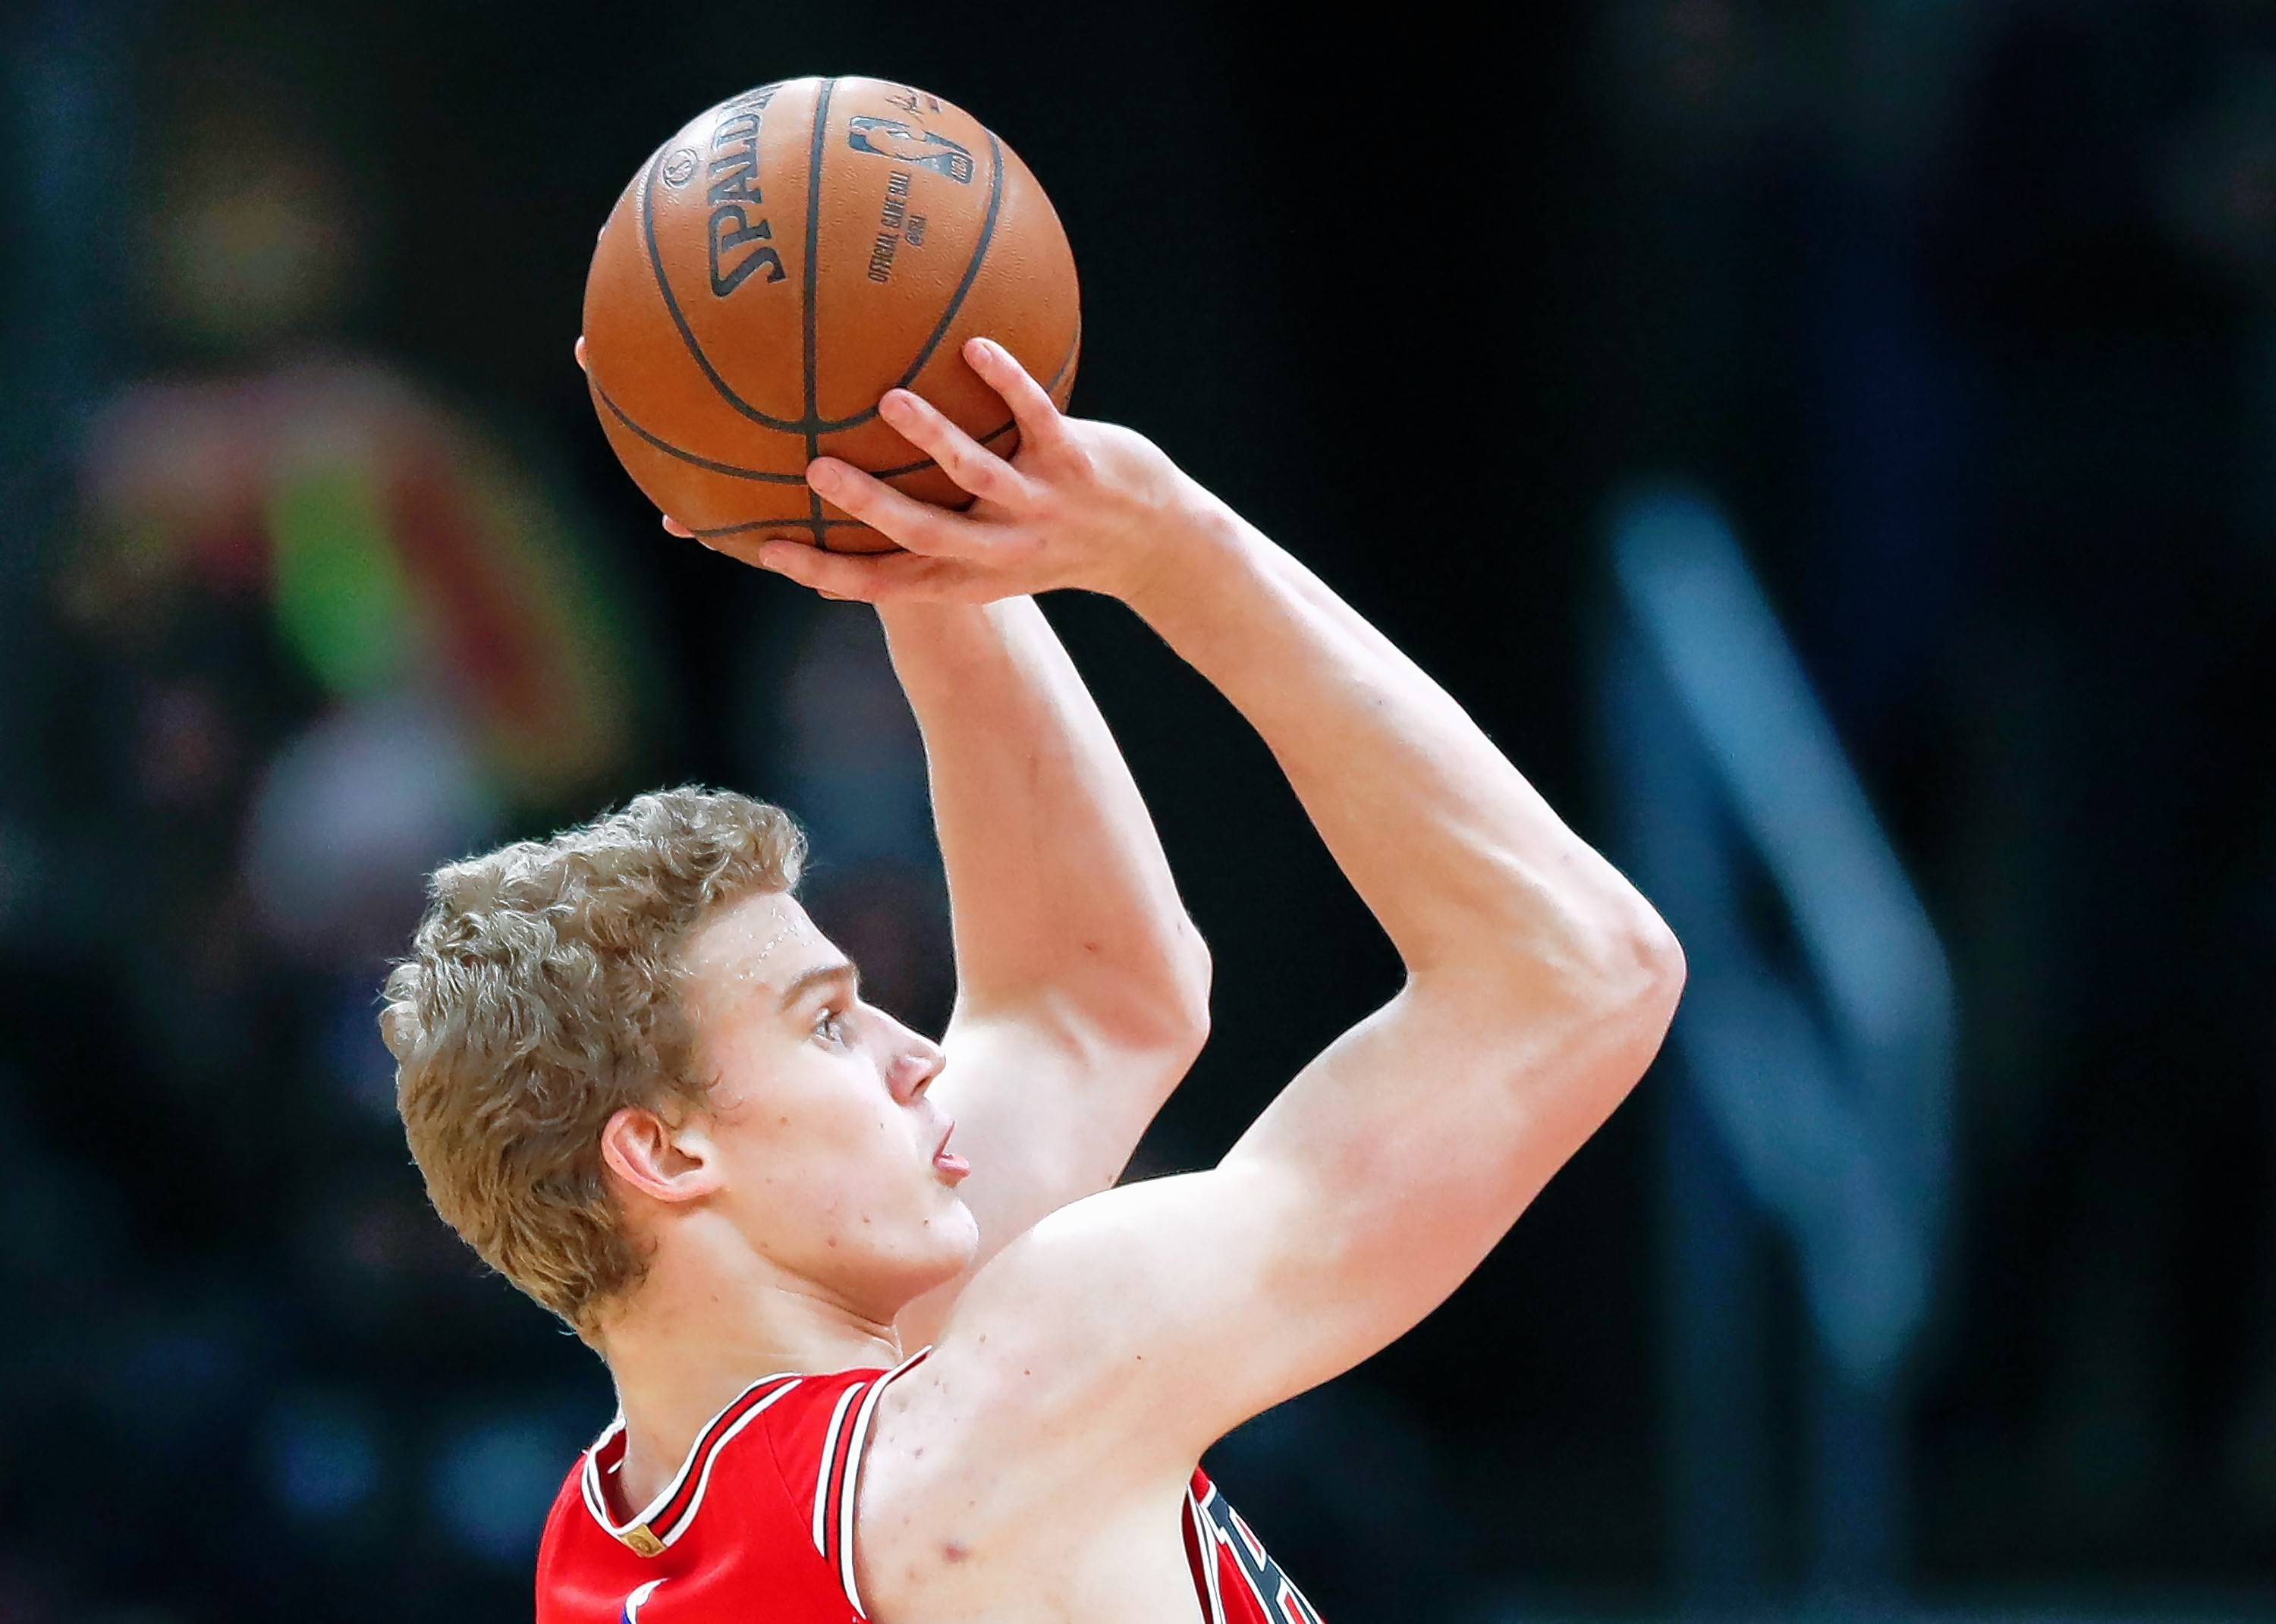 Chicago Bulls forward Lauri Markkanen has struggled from the 3-point range in recent games.